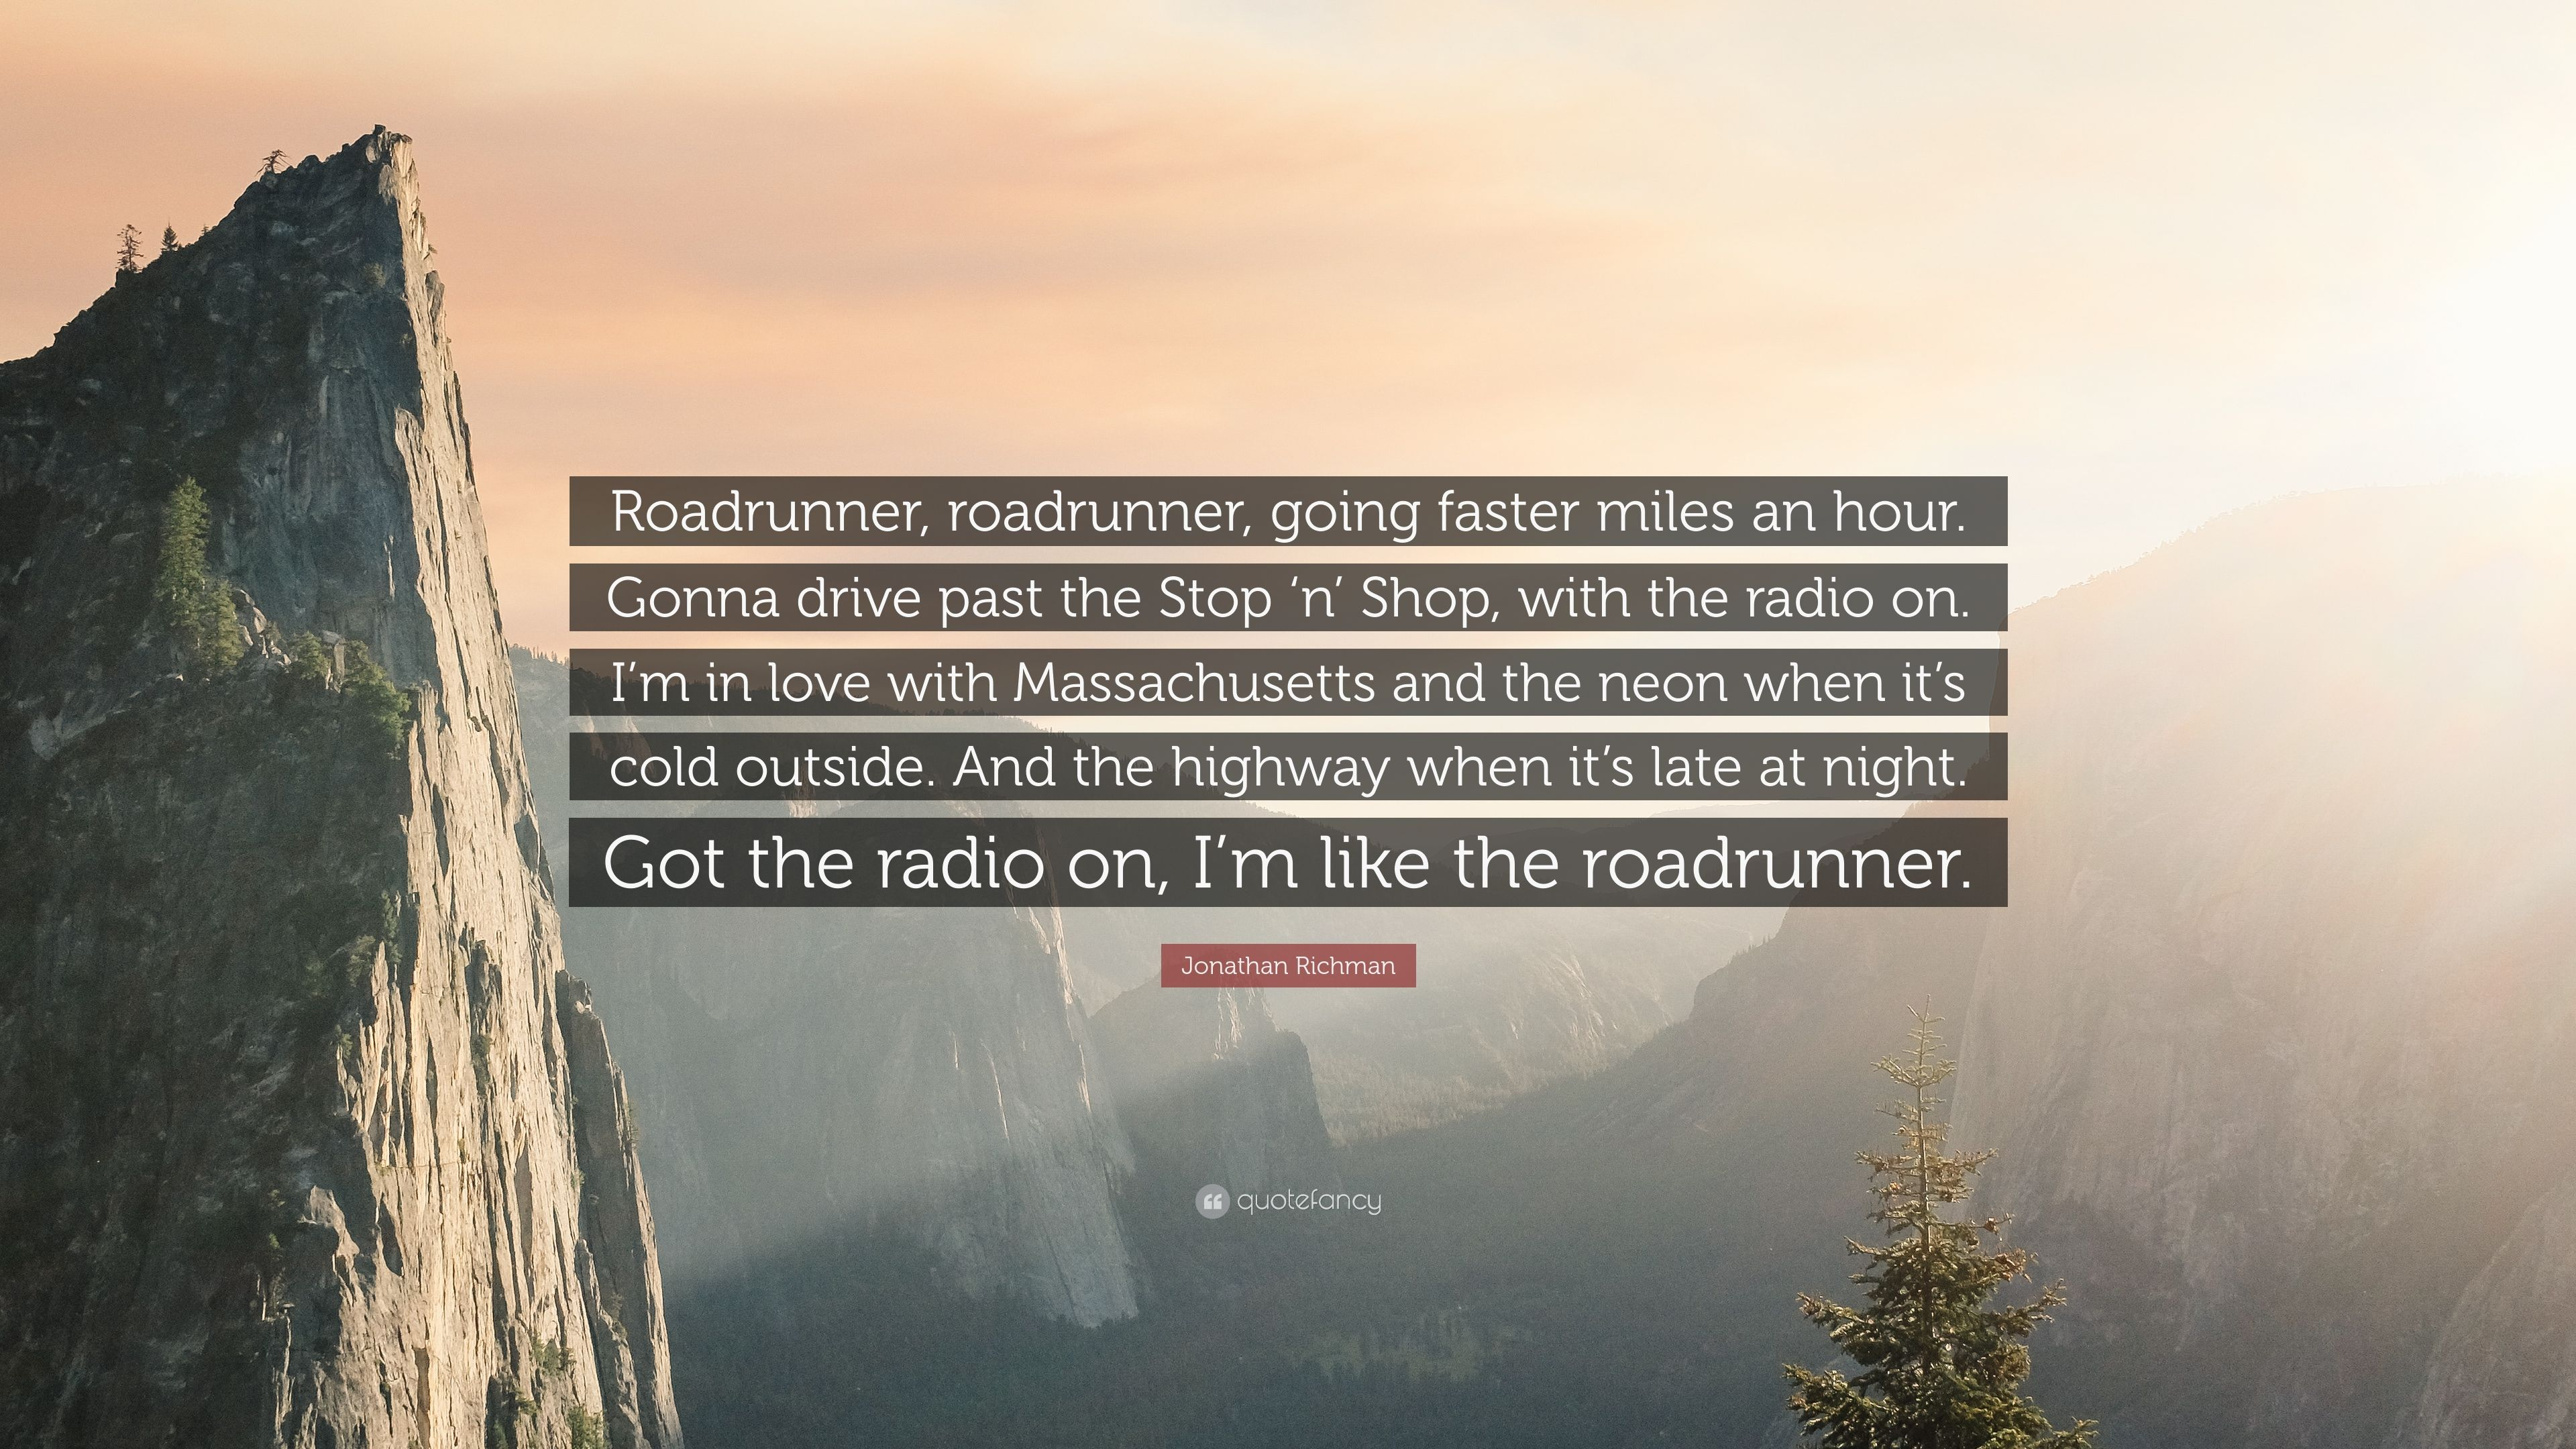 Jonathan Richman Quote Roadrunner Roadrunner Going Faster Miles